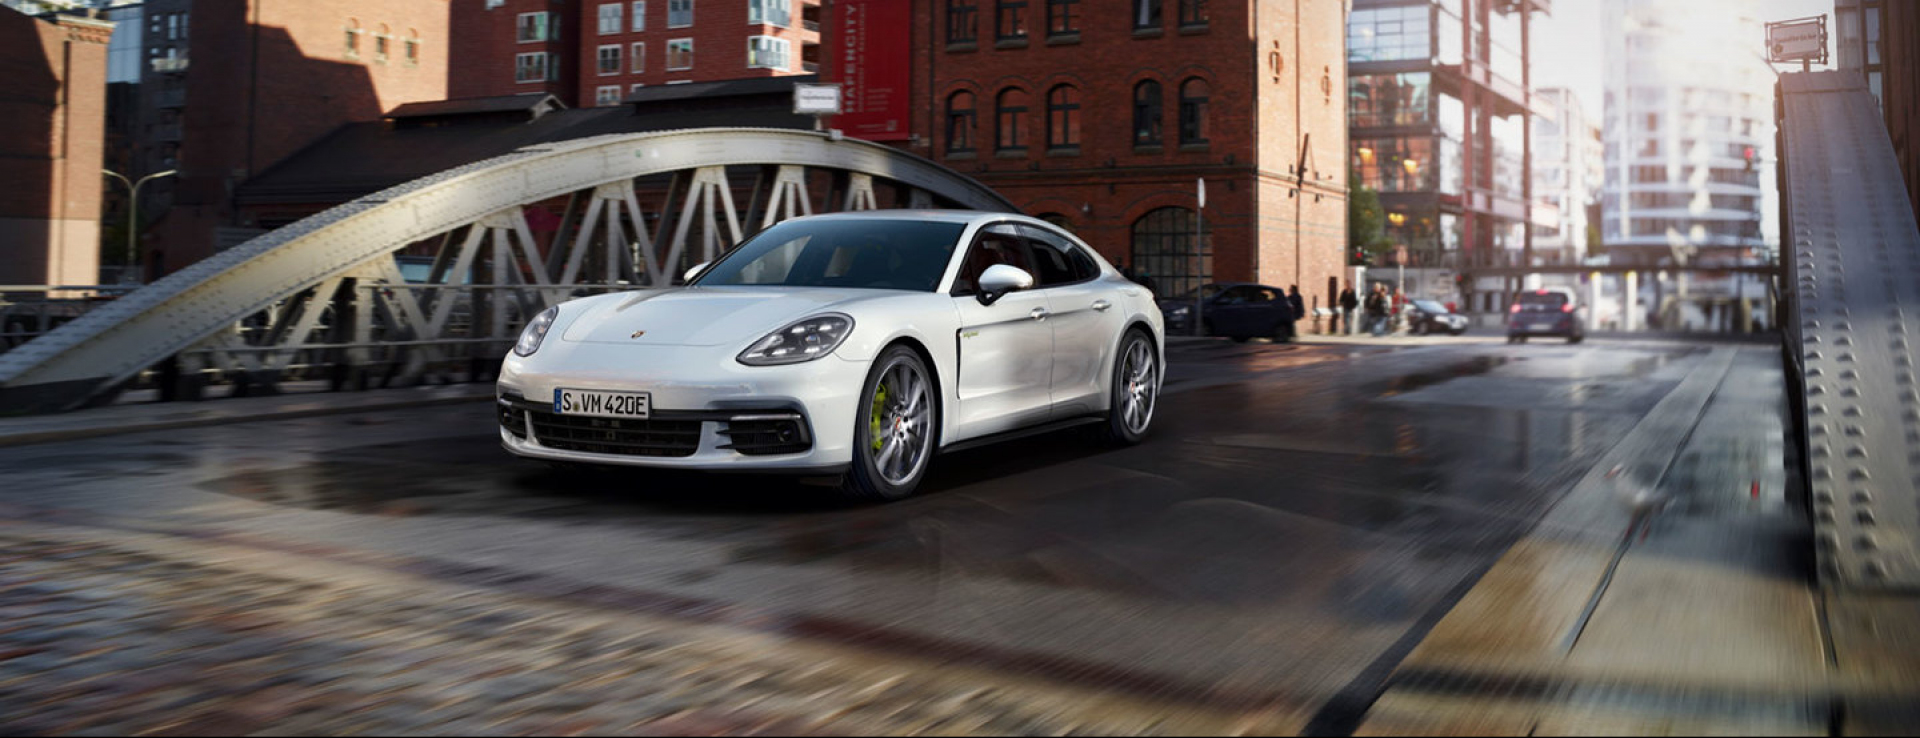 Porsche - Panamera 4 E-Hybrid - Courage changes everything.